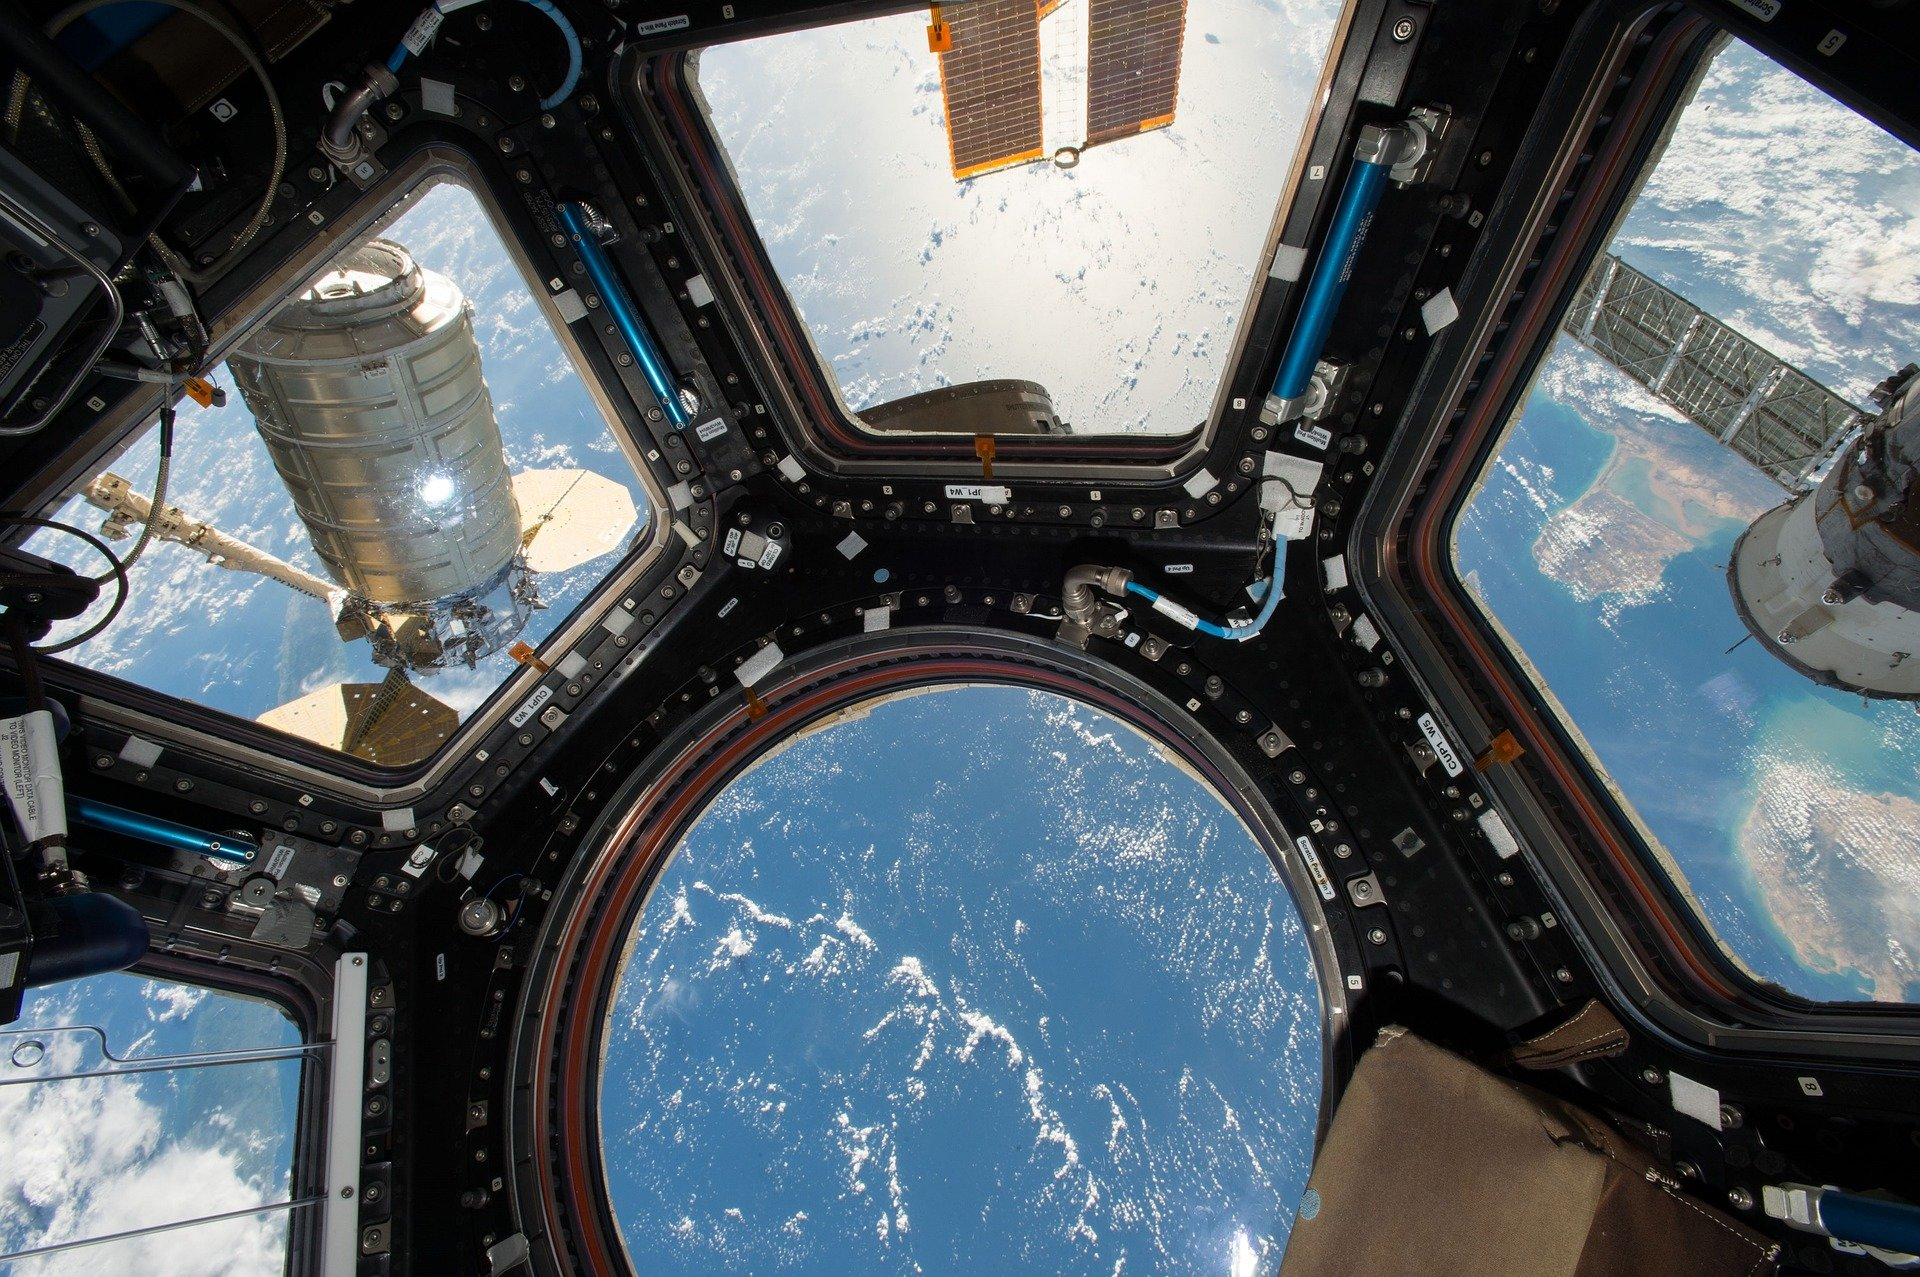 Superbugs have colonized the International Space Station—but there's a silver lining